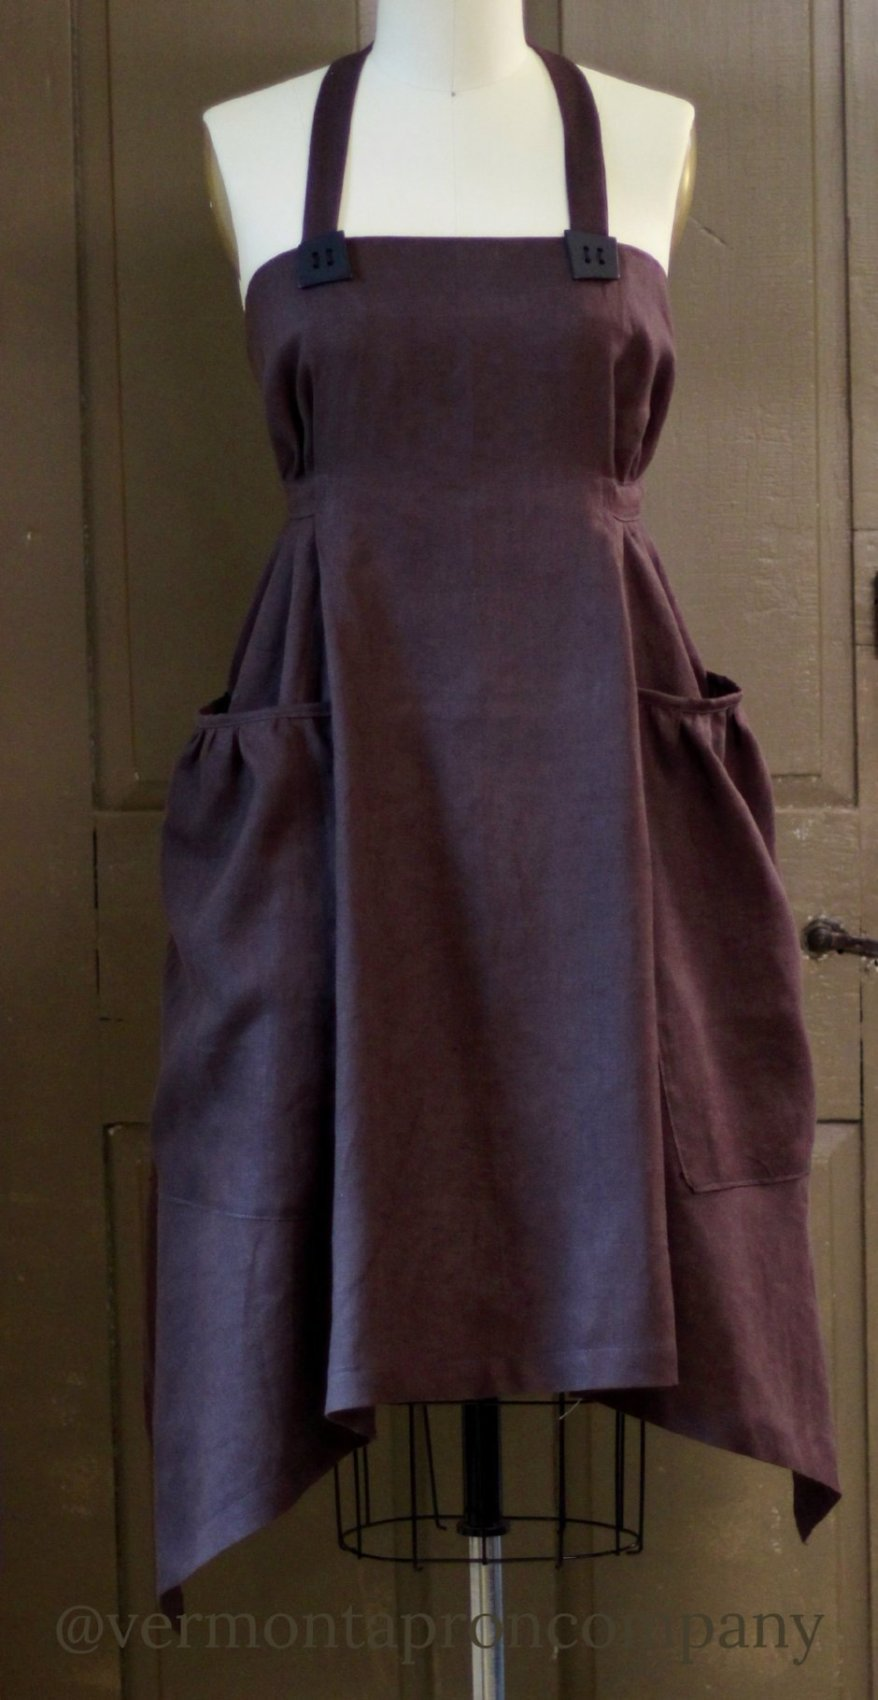 XS-5X - Hippy Apron in Chocolate Brown Linen